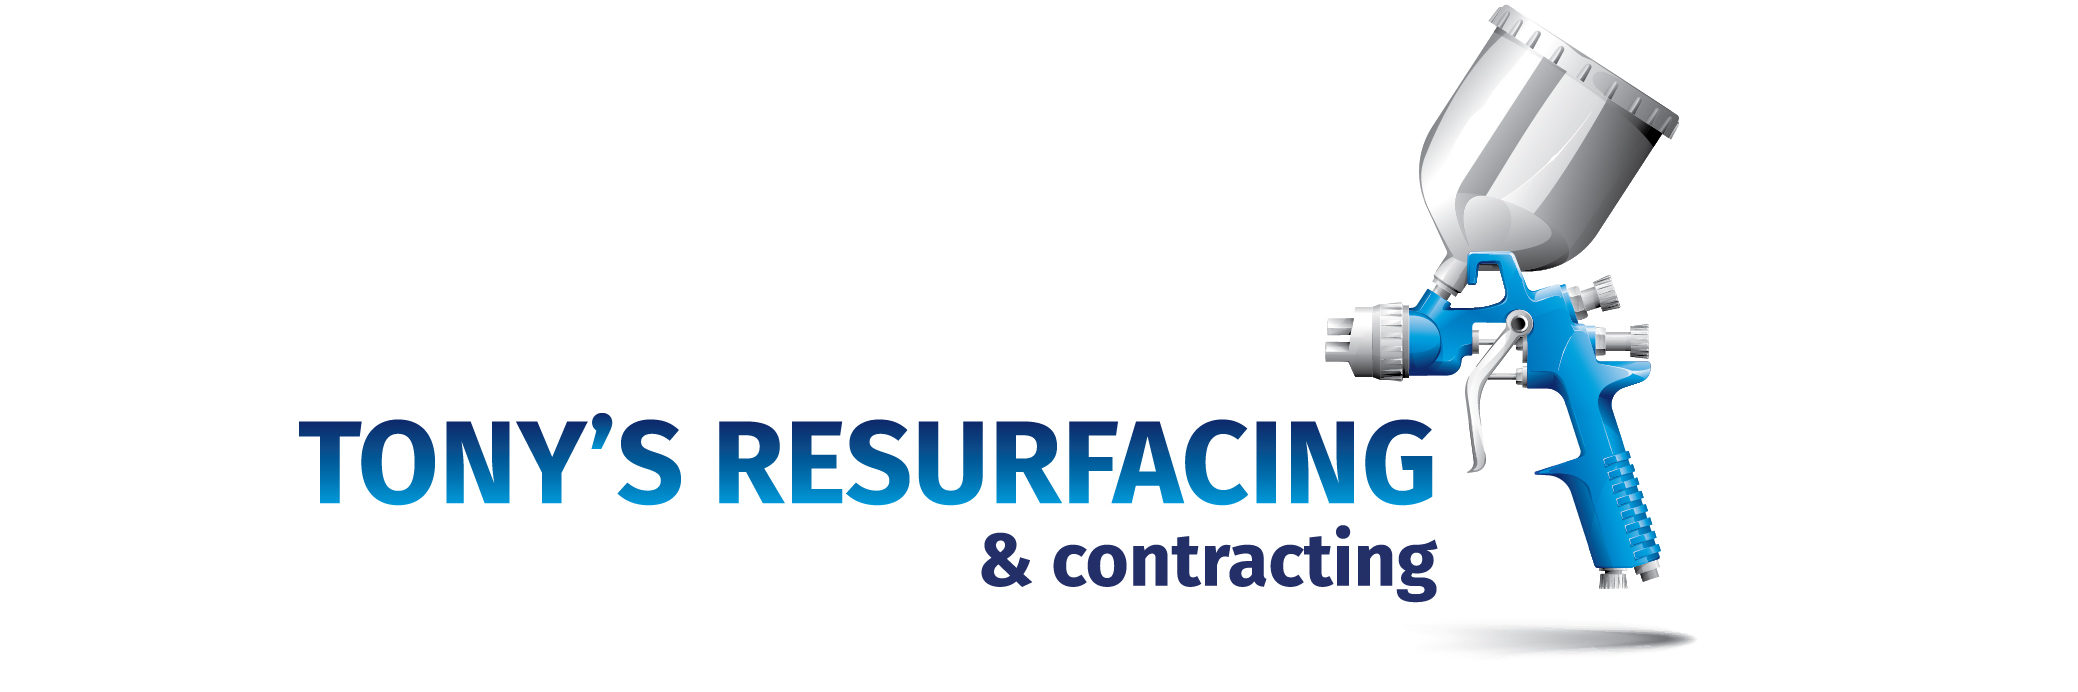 Tony's Resurfacing & Contracting